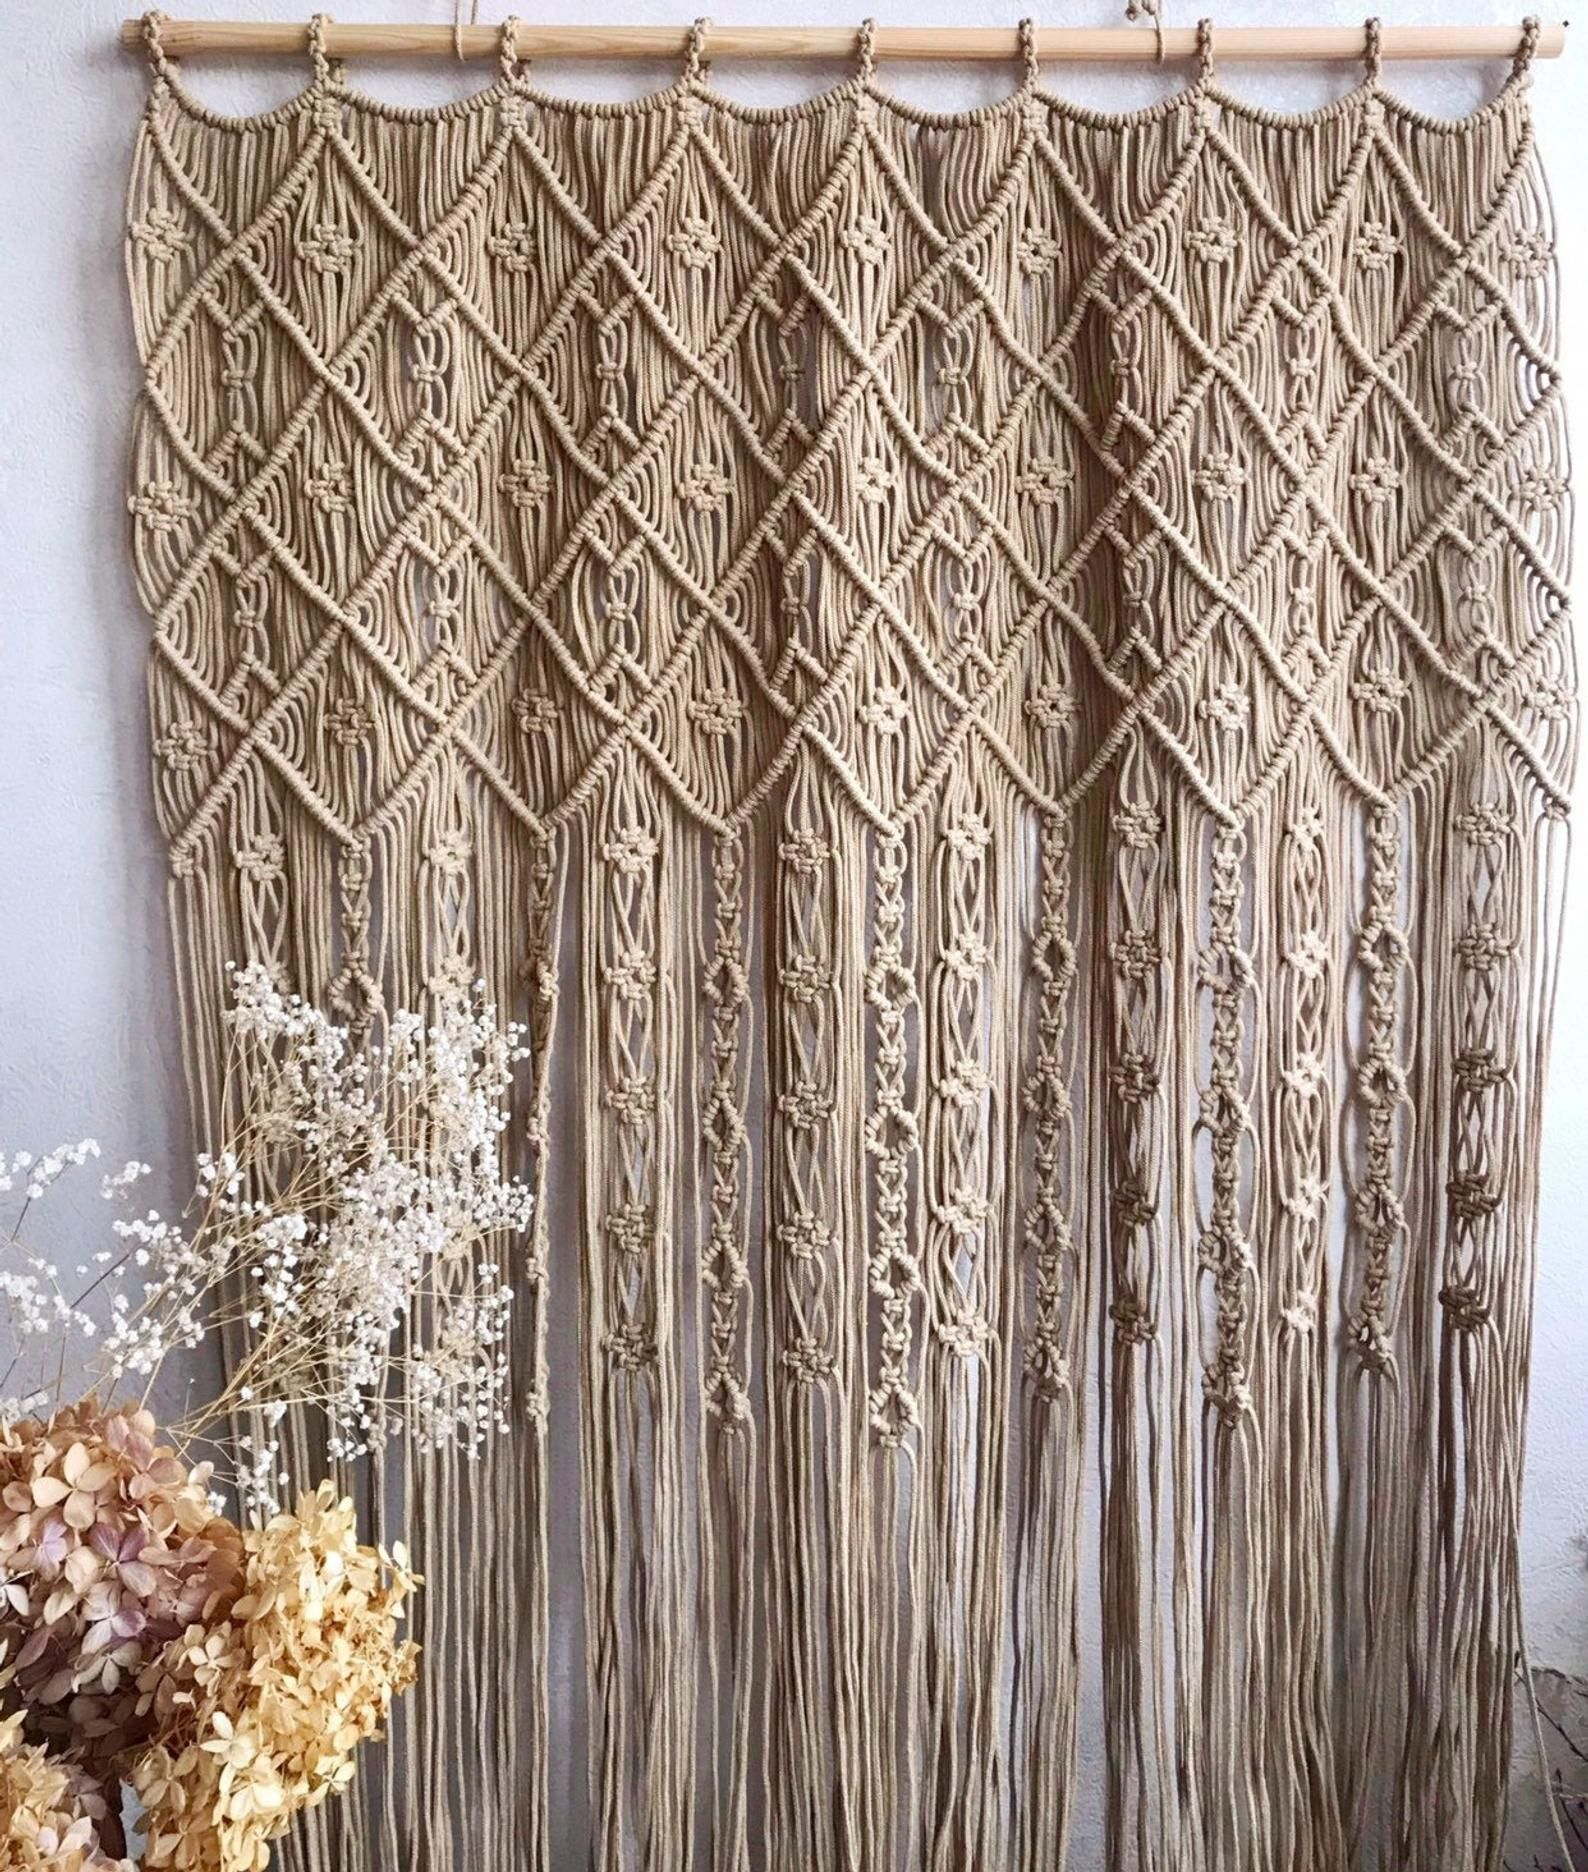 Macrame Curtain One Or Two Panels Curtain Macrame Room Etsy In